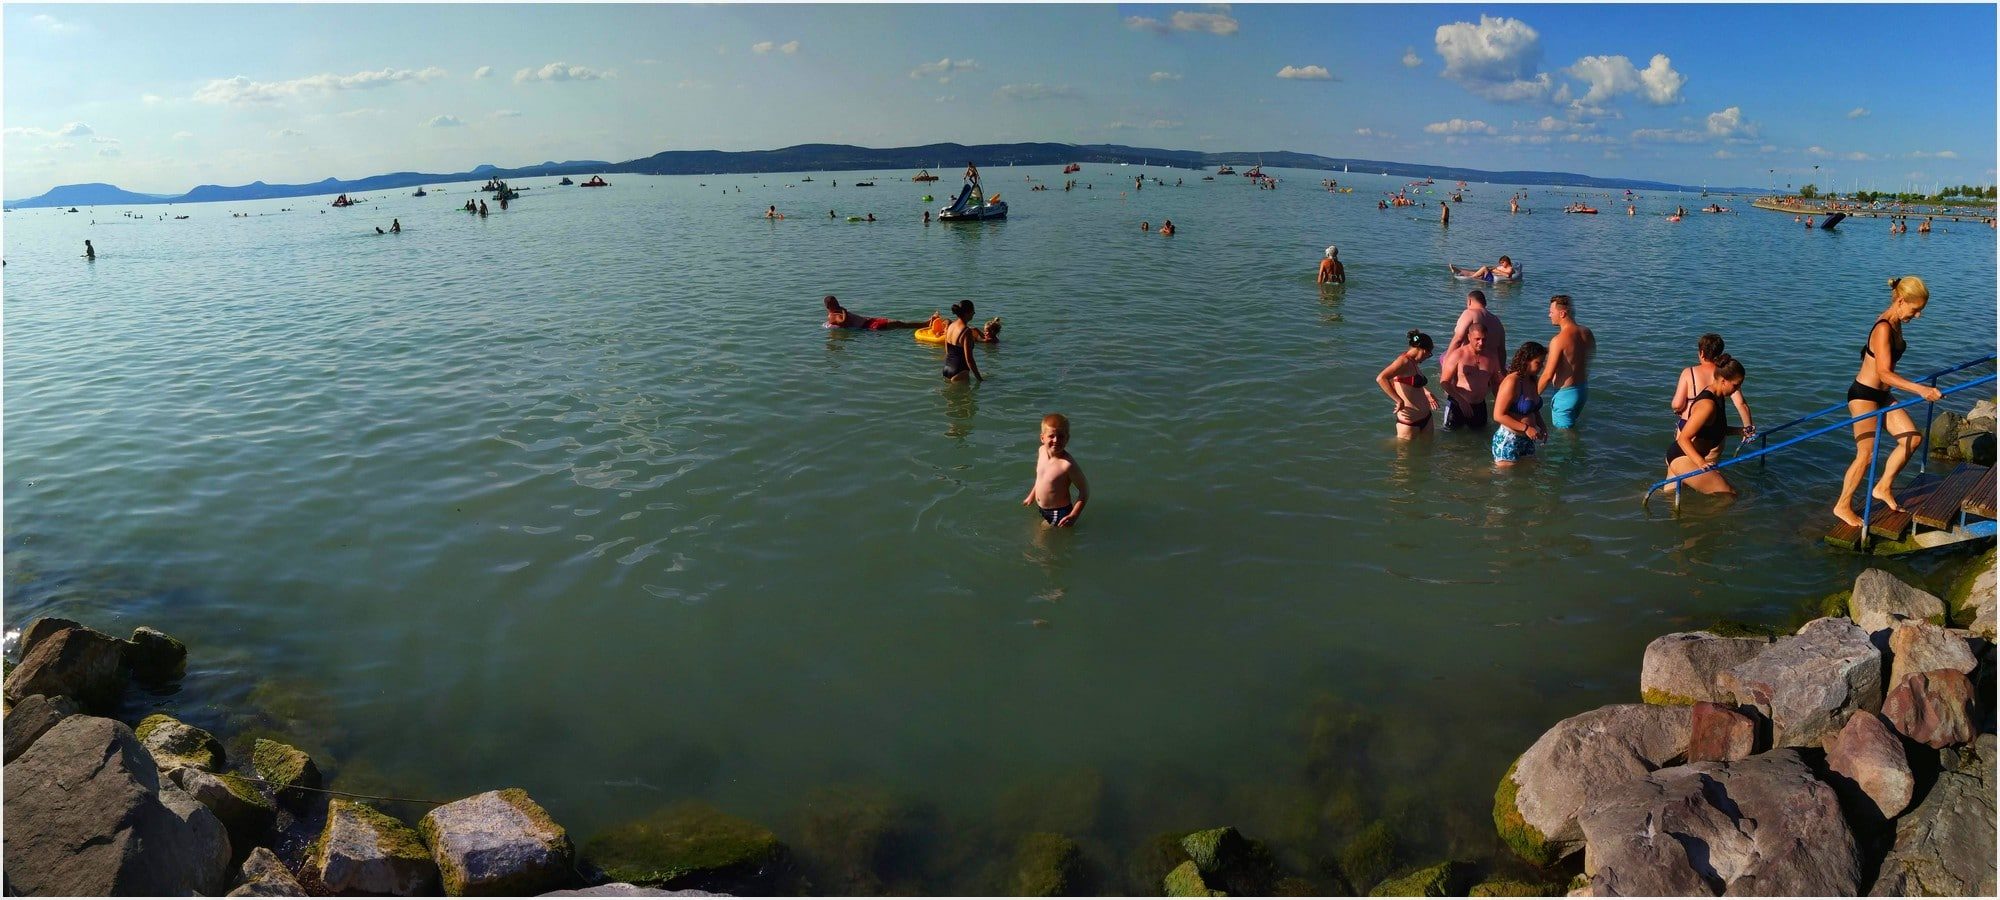 The fantastic Lake Balaton